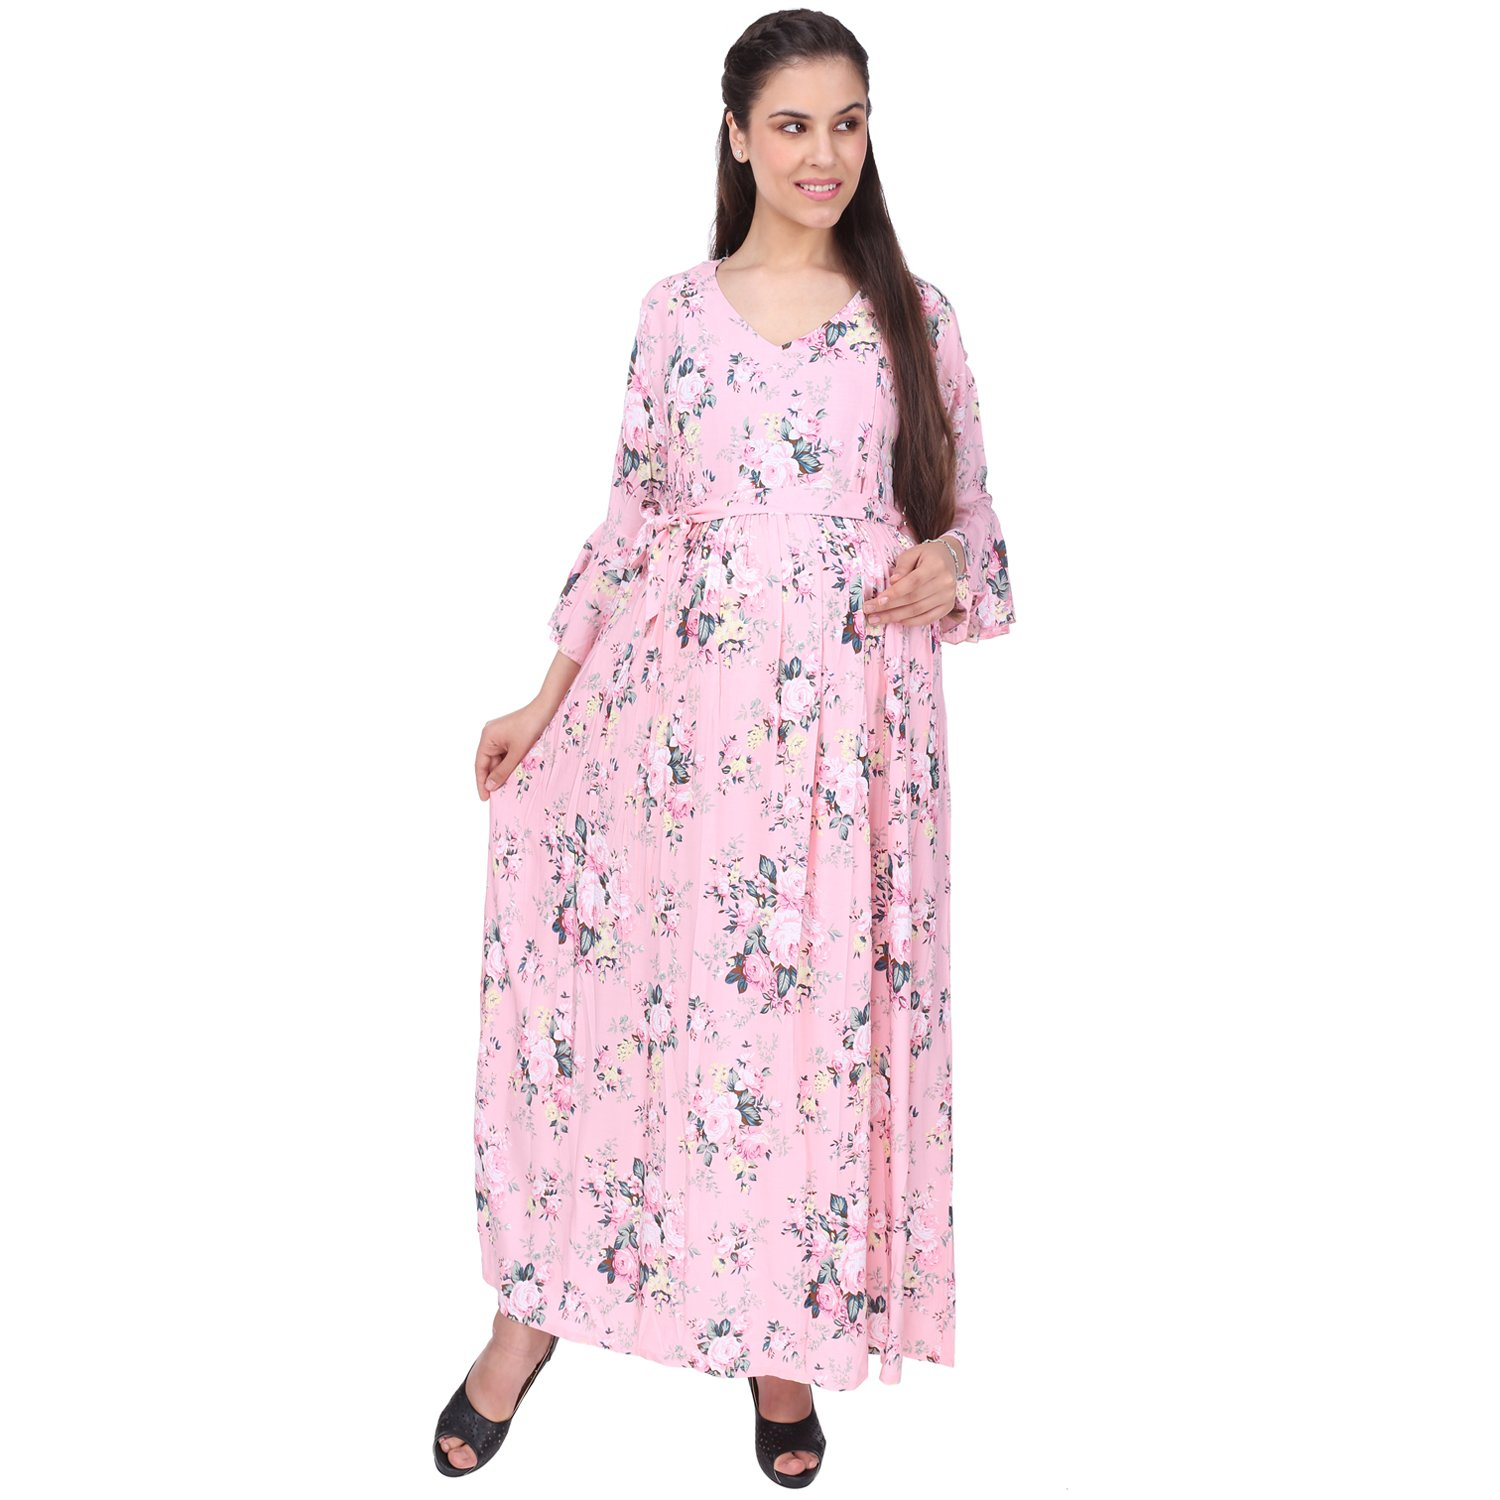 e6c6b76750784 VIXENWRAP Cute Pink Cotton Floral Print Maternity Dress (L_Pink):  Amazon.in: Clothing & Accessories